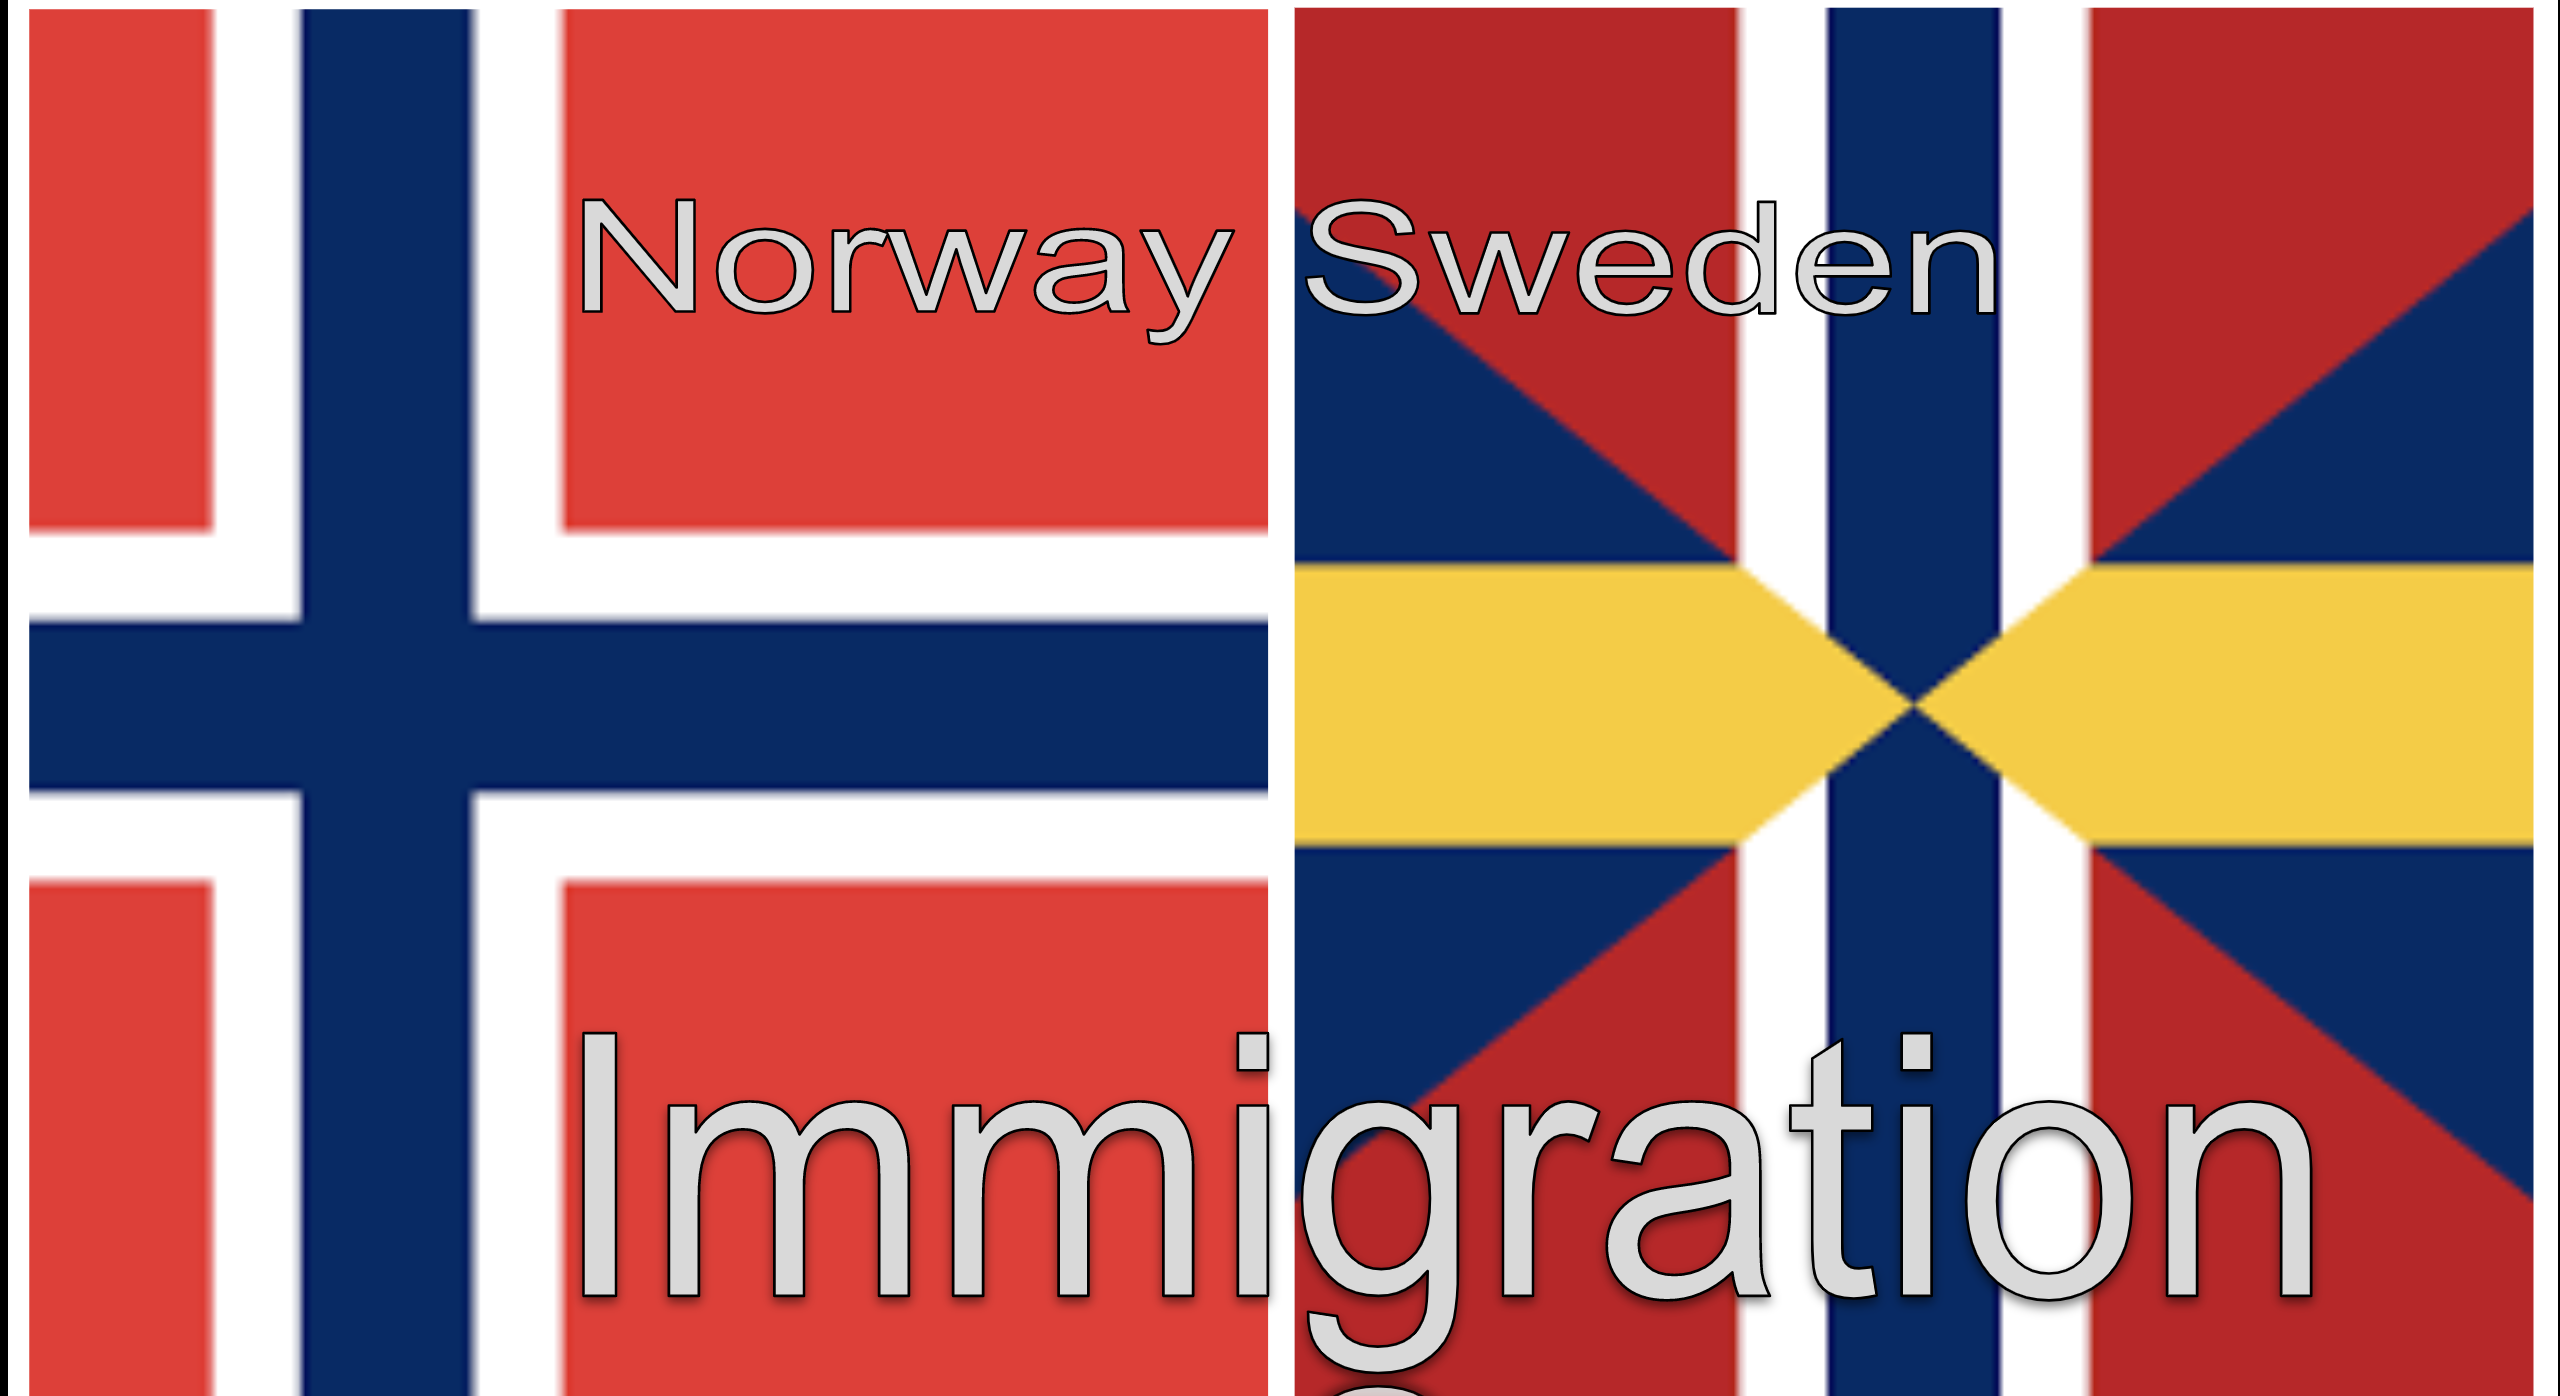 Norway Sweden